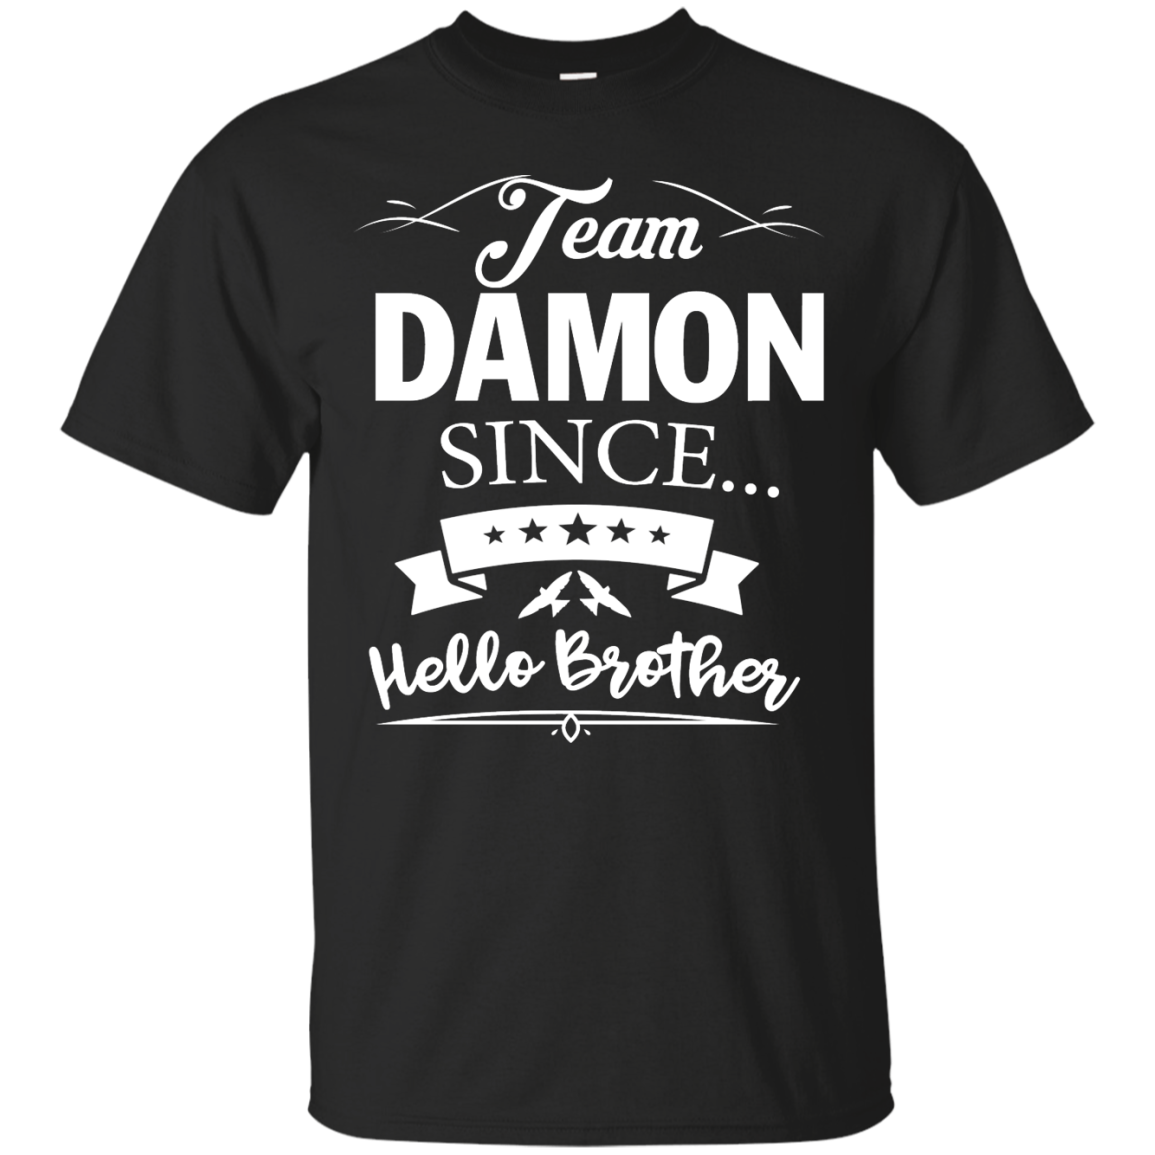 Team Damon Since Hello Brother. Damon Salvatore T-Shirt - Custom Ultra Cotton T-Shirt - Black